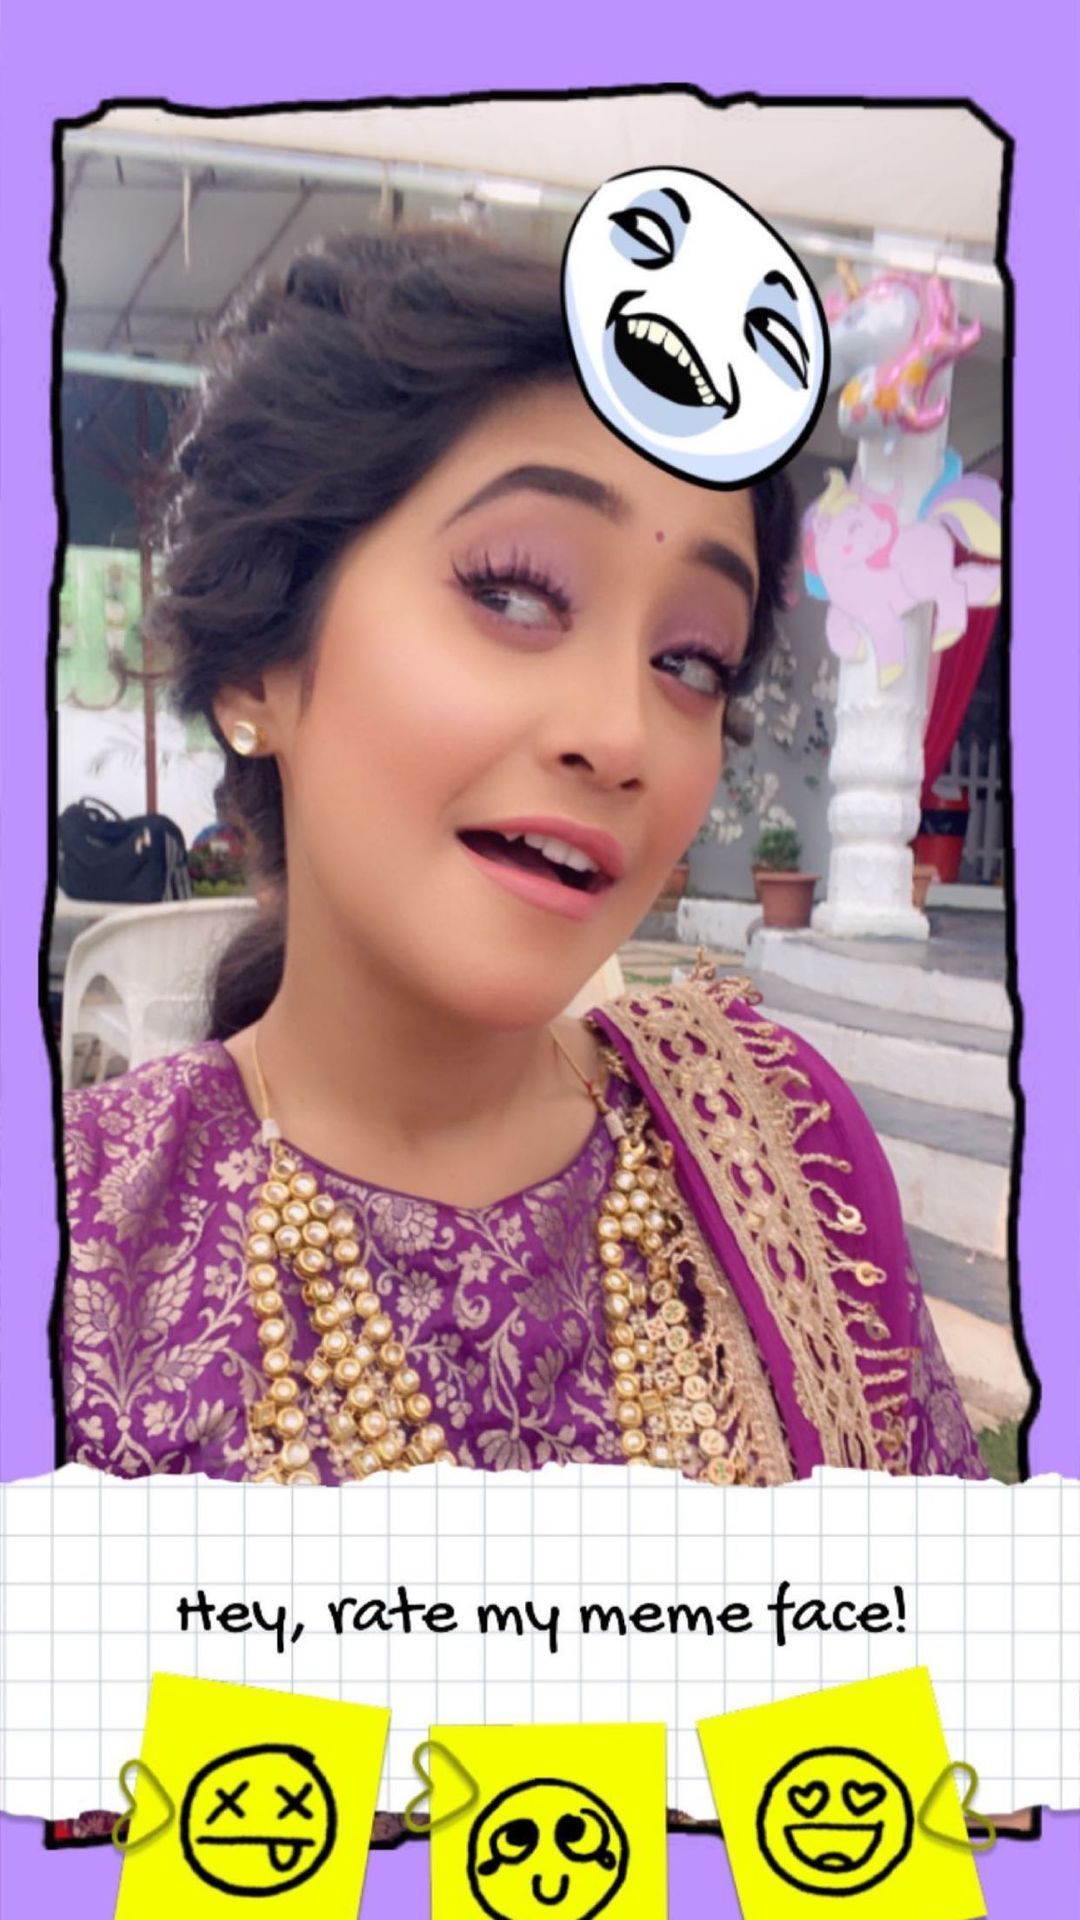 Yeh Rishta Kya Kehlata Hai actress Shivangi Joshi is the queen of expressions, find out here